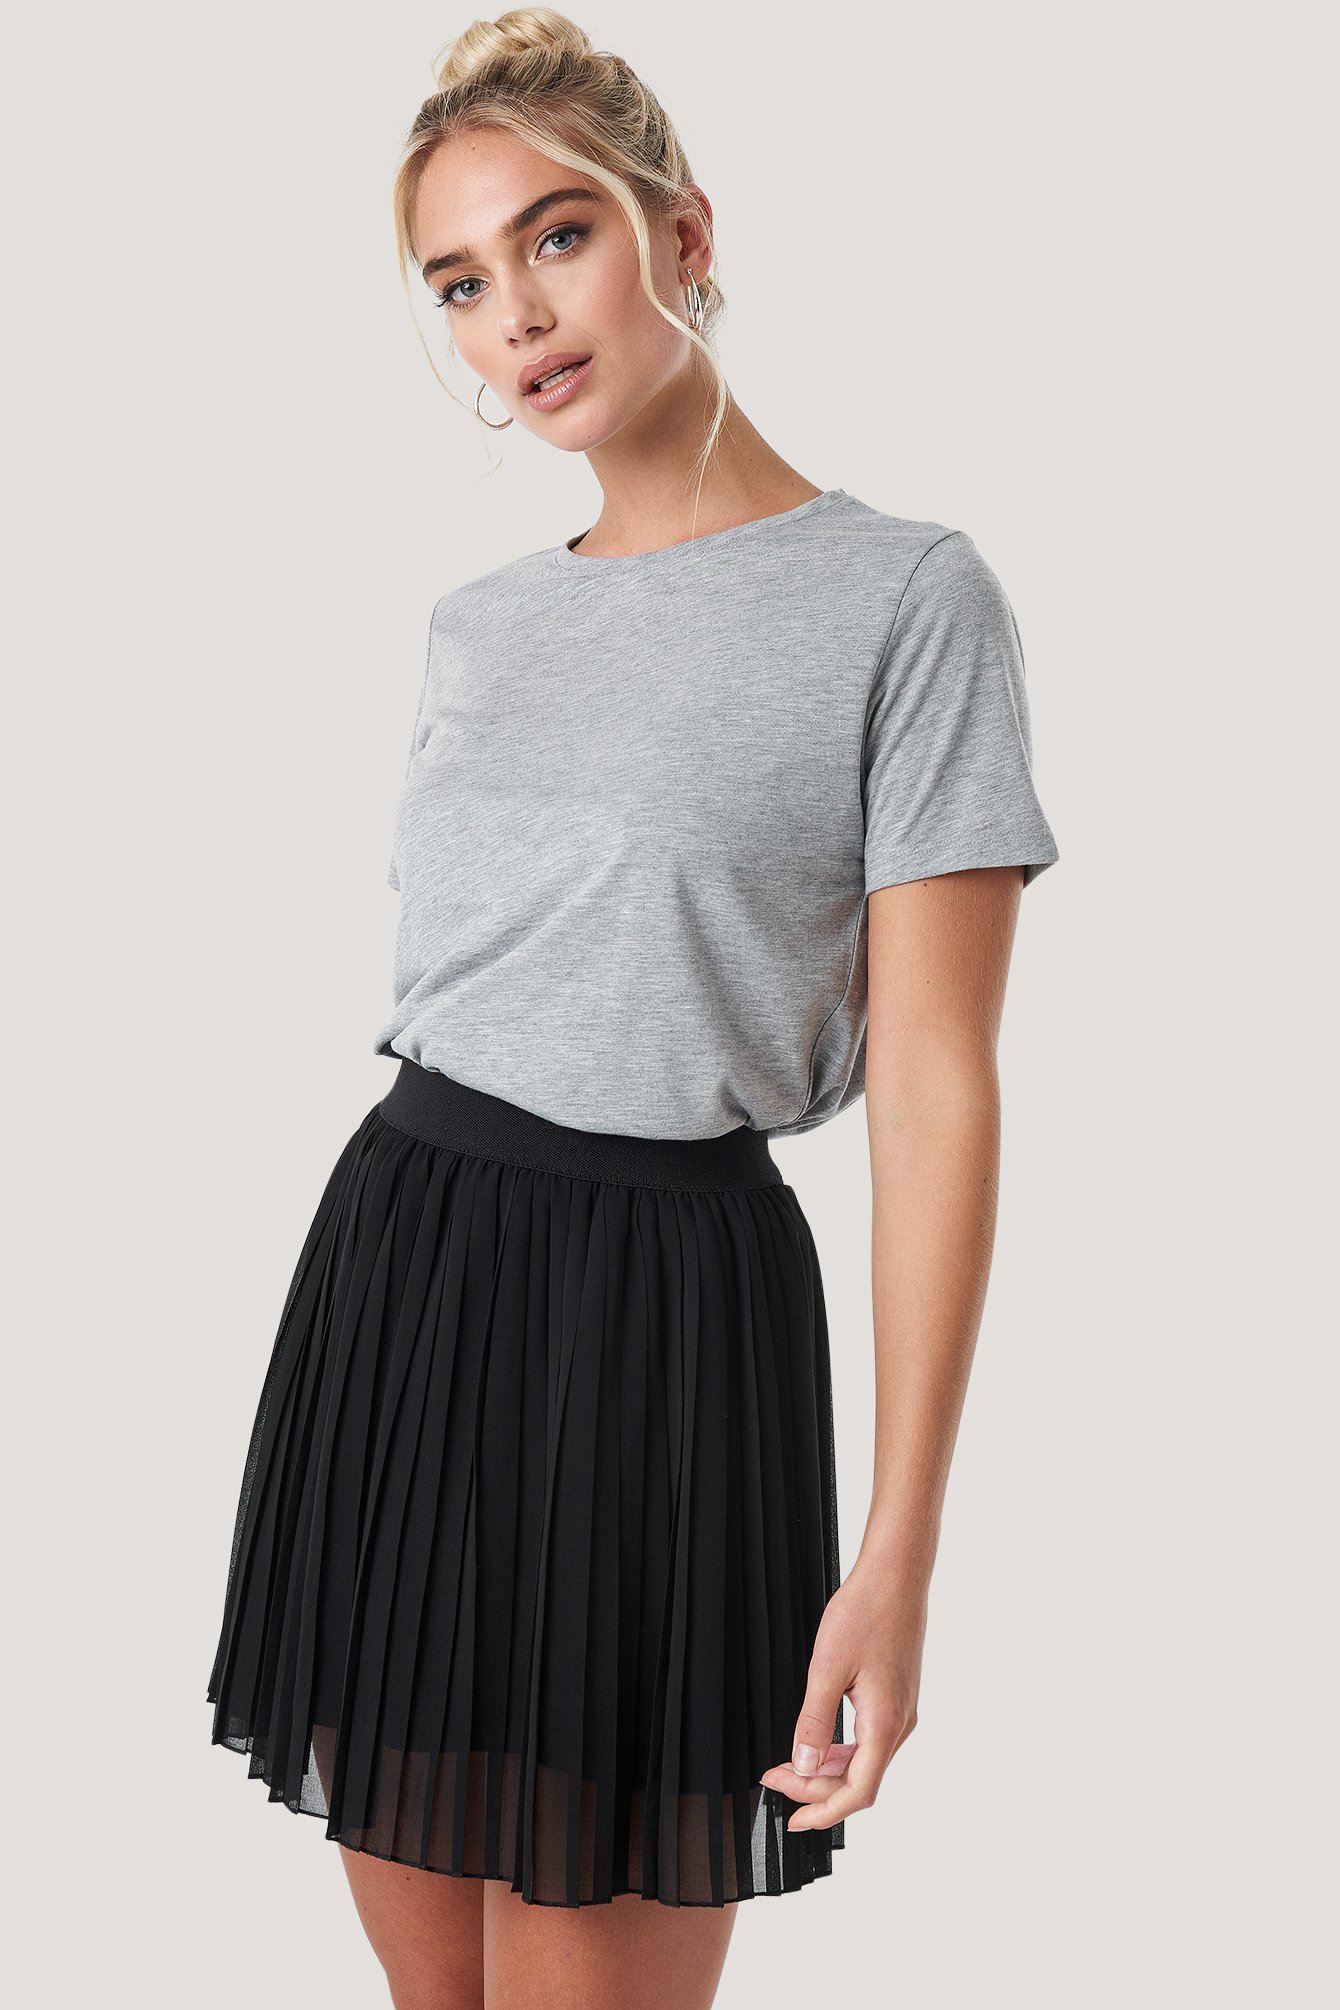 Black Mini Pleated Skirt